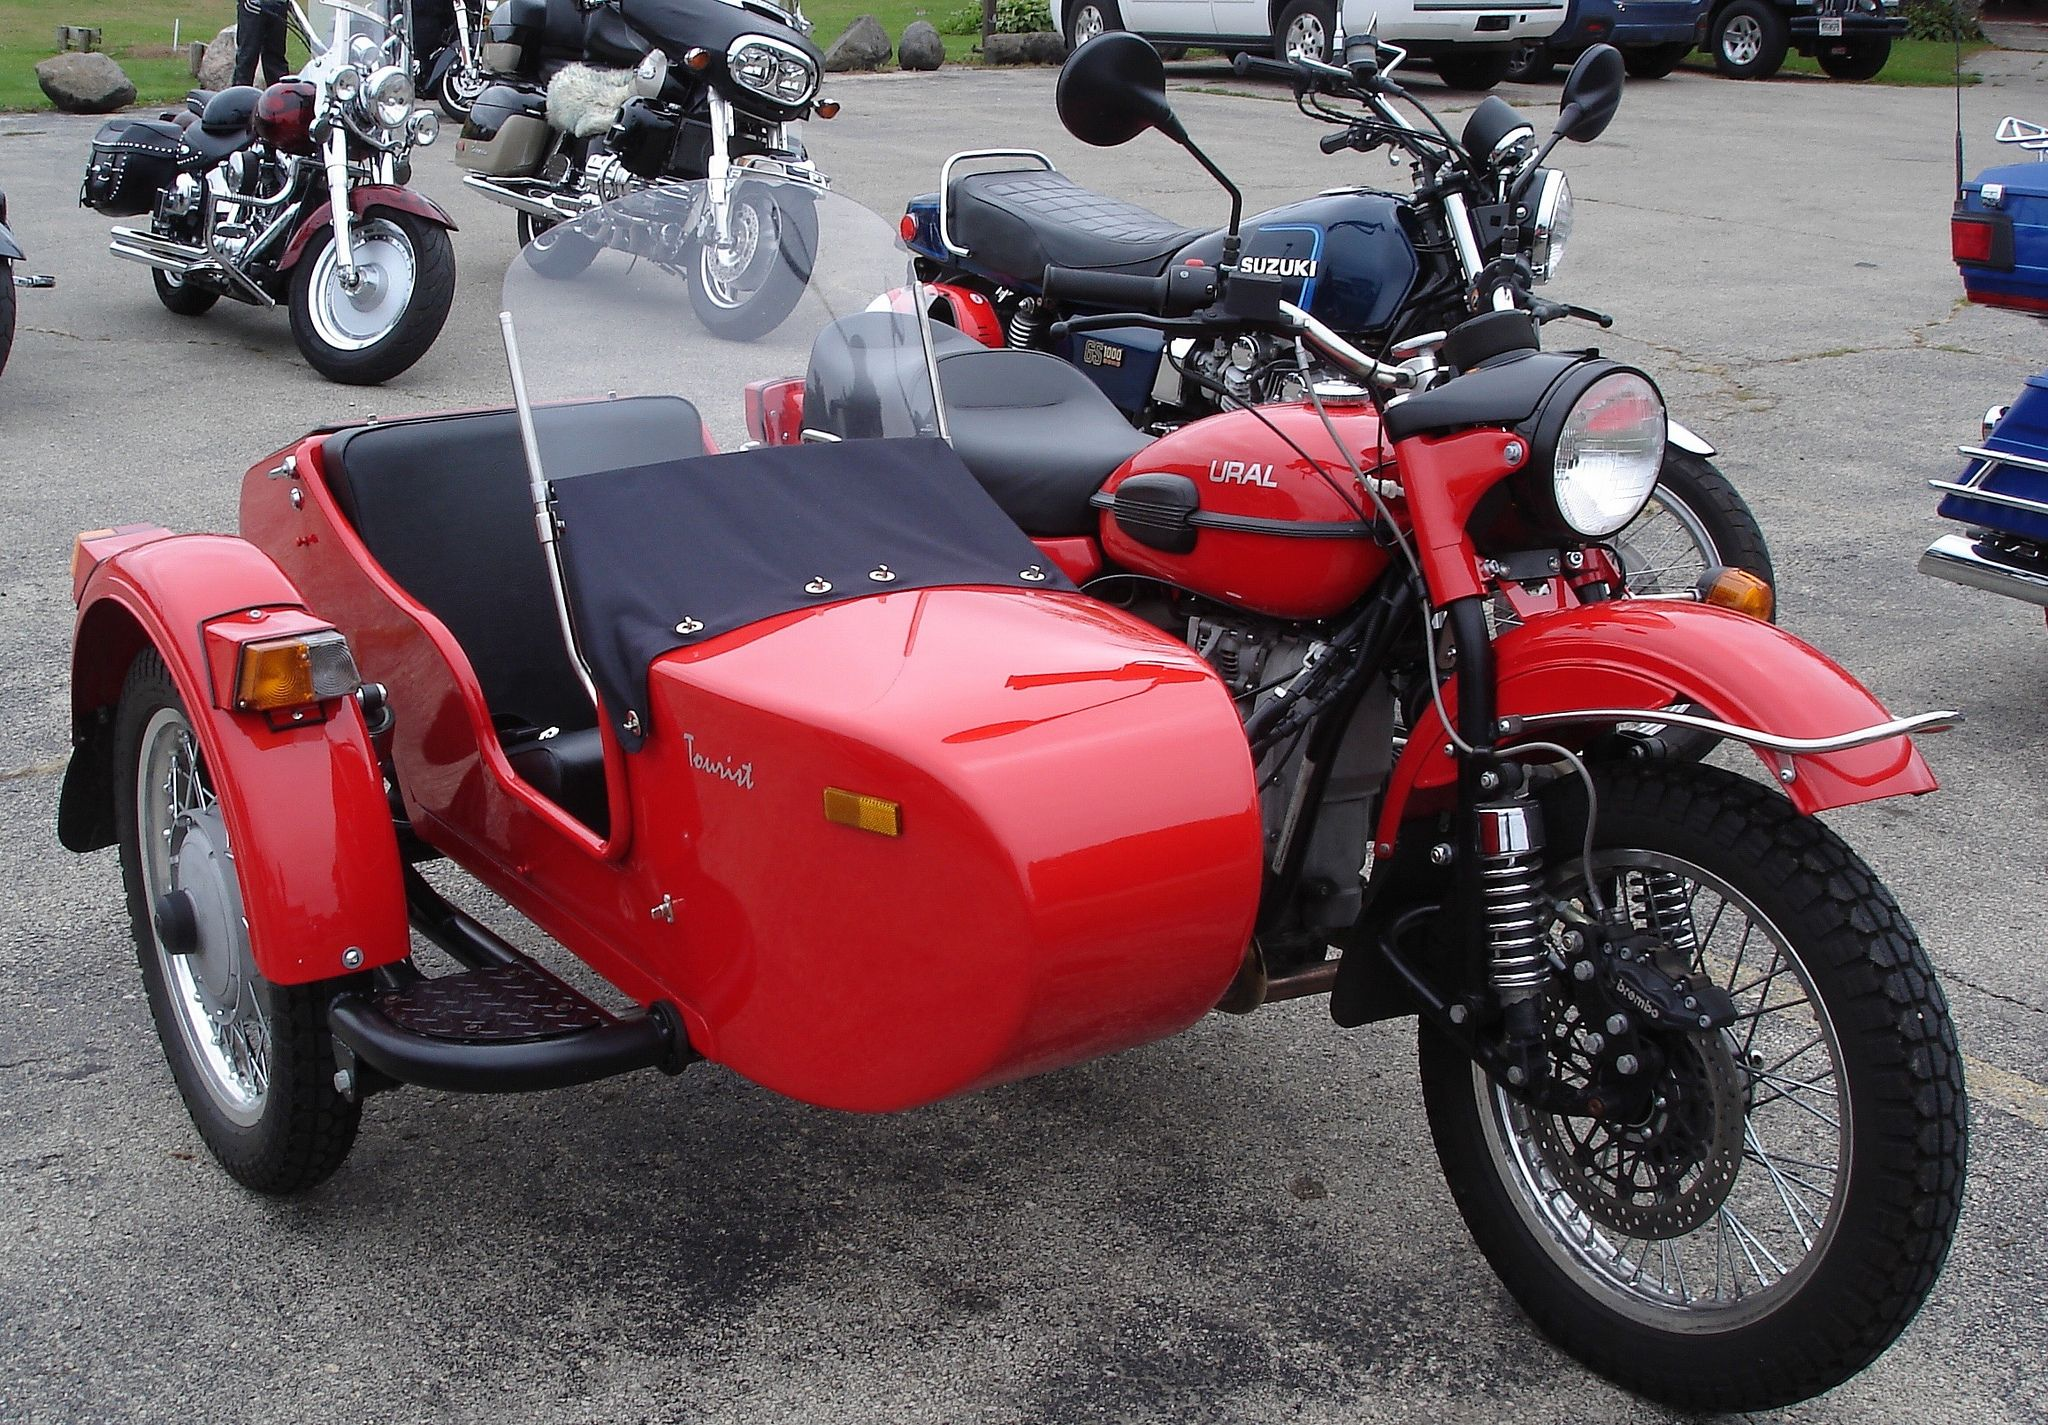 Untitled Motorcycle Sidecar Sidecar Springfield